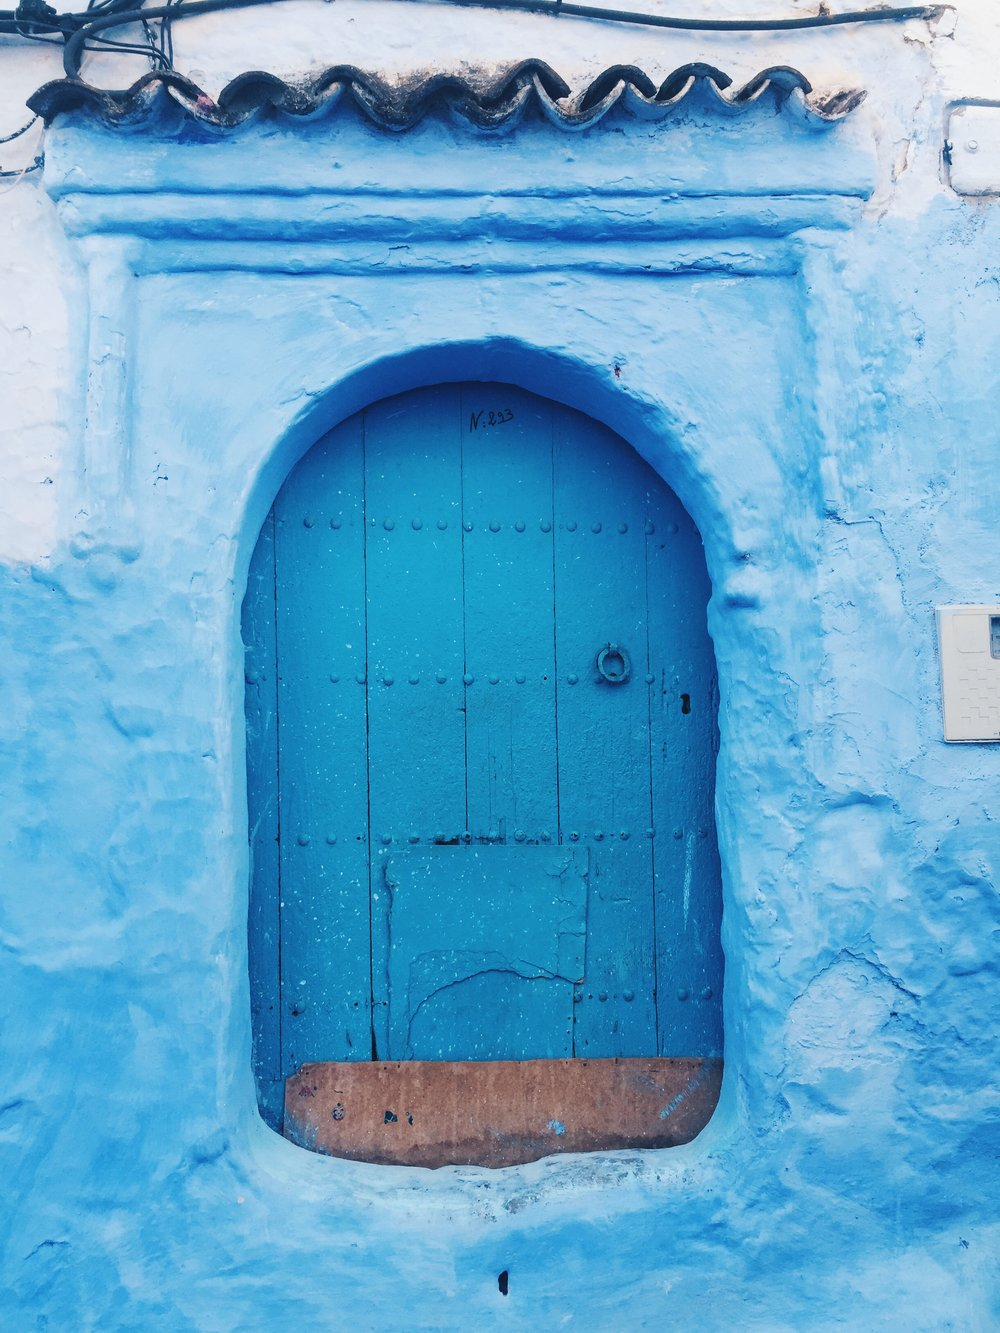 Chefchaouen (Blue City)